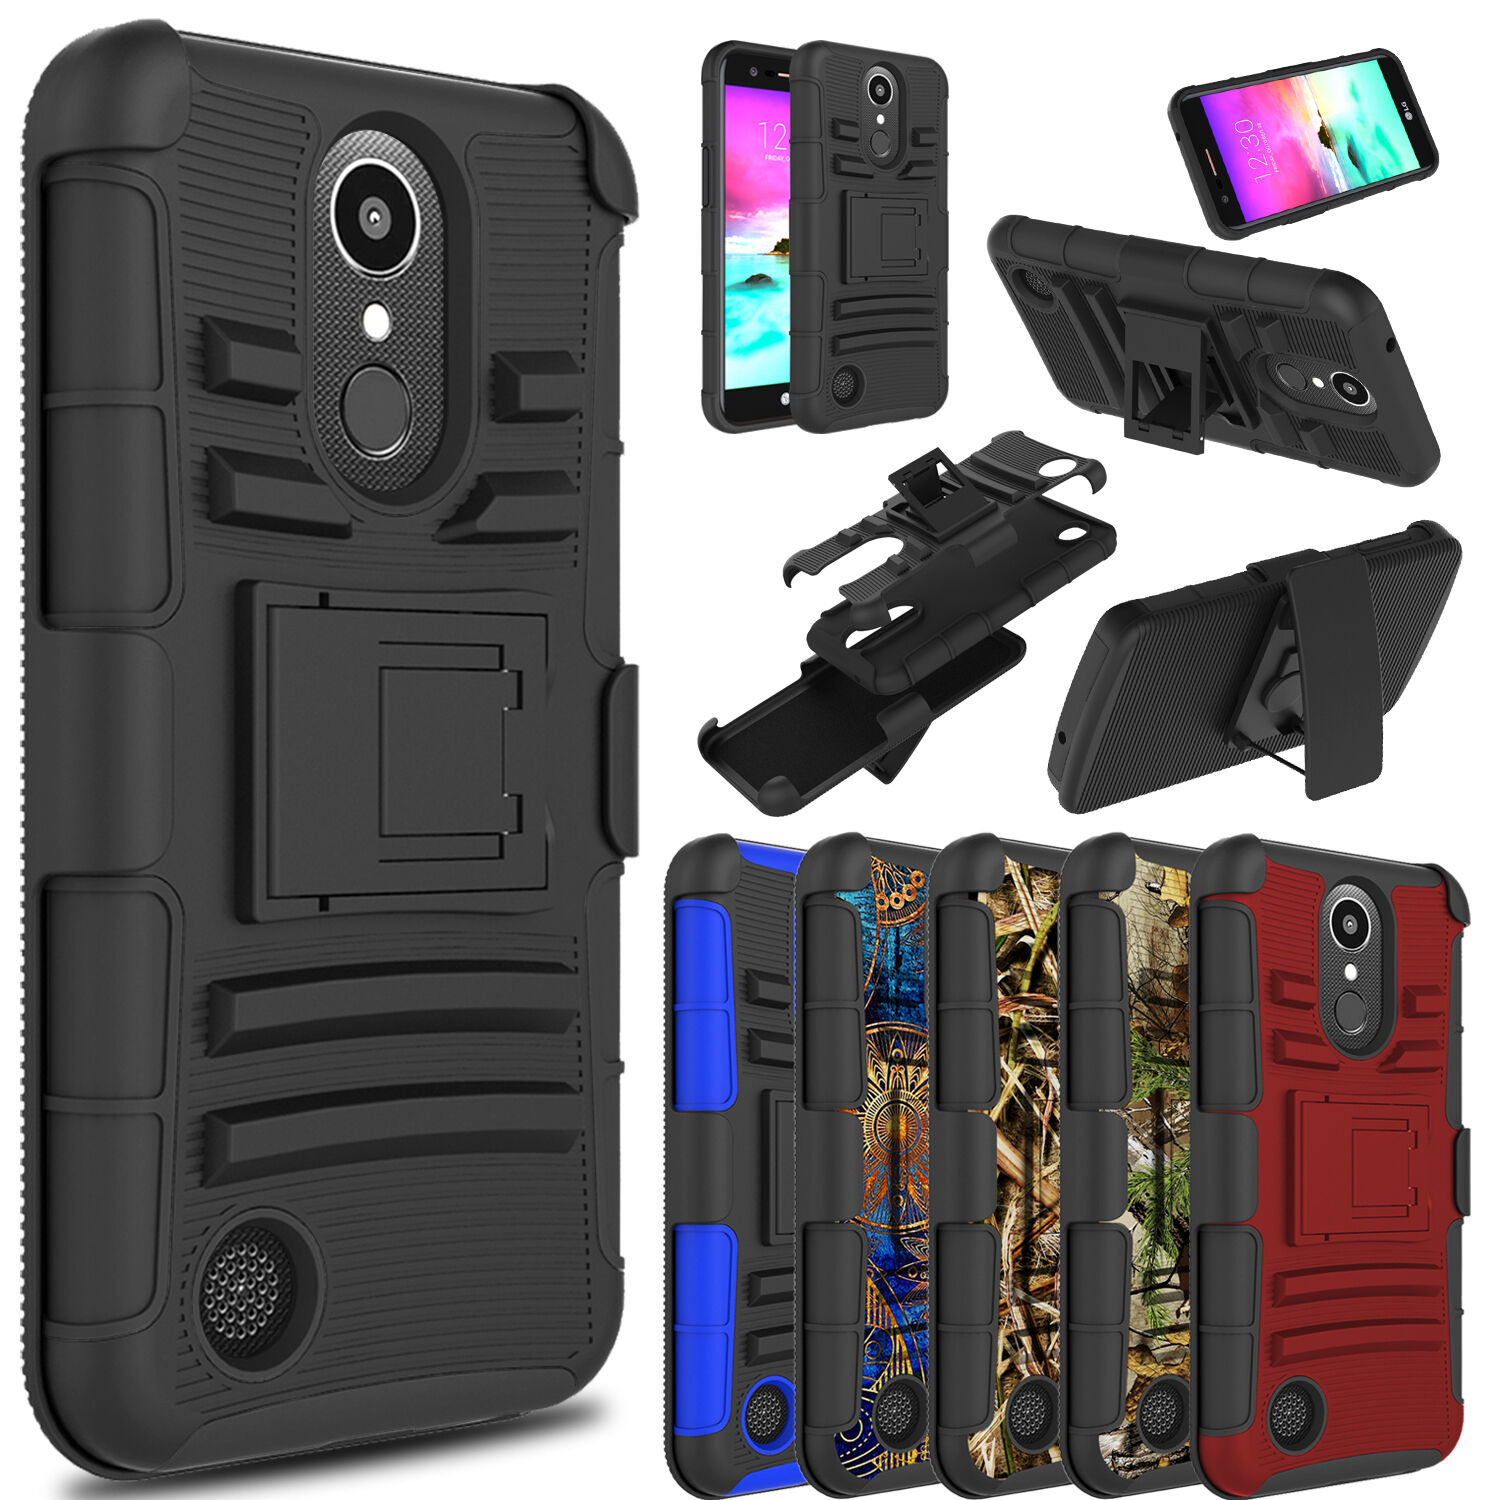 Купить casedazzle 3 layer Cell Phone Shell Armor With Stand Holder - For LG K20 Plus/K20 V/Harmony Shockproof With Kickstand Holster Clip Case Cover